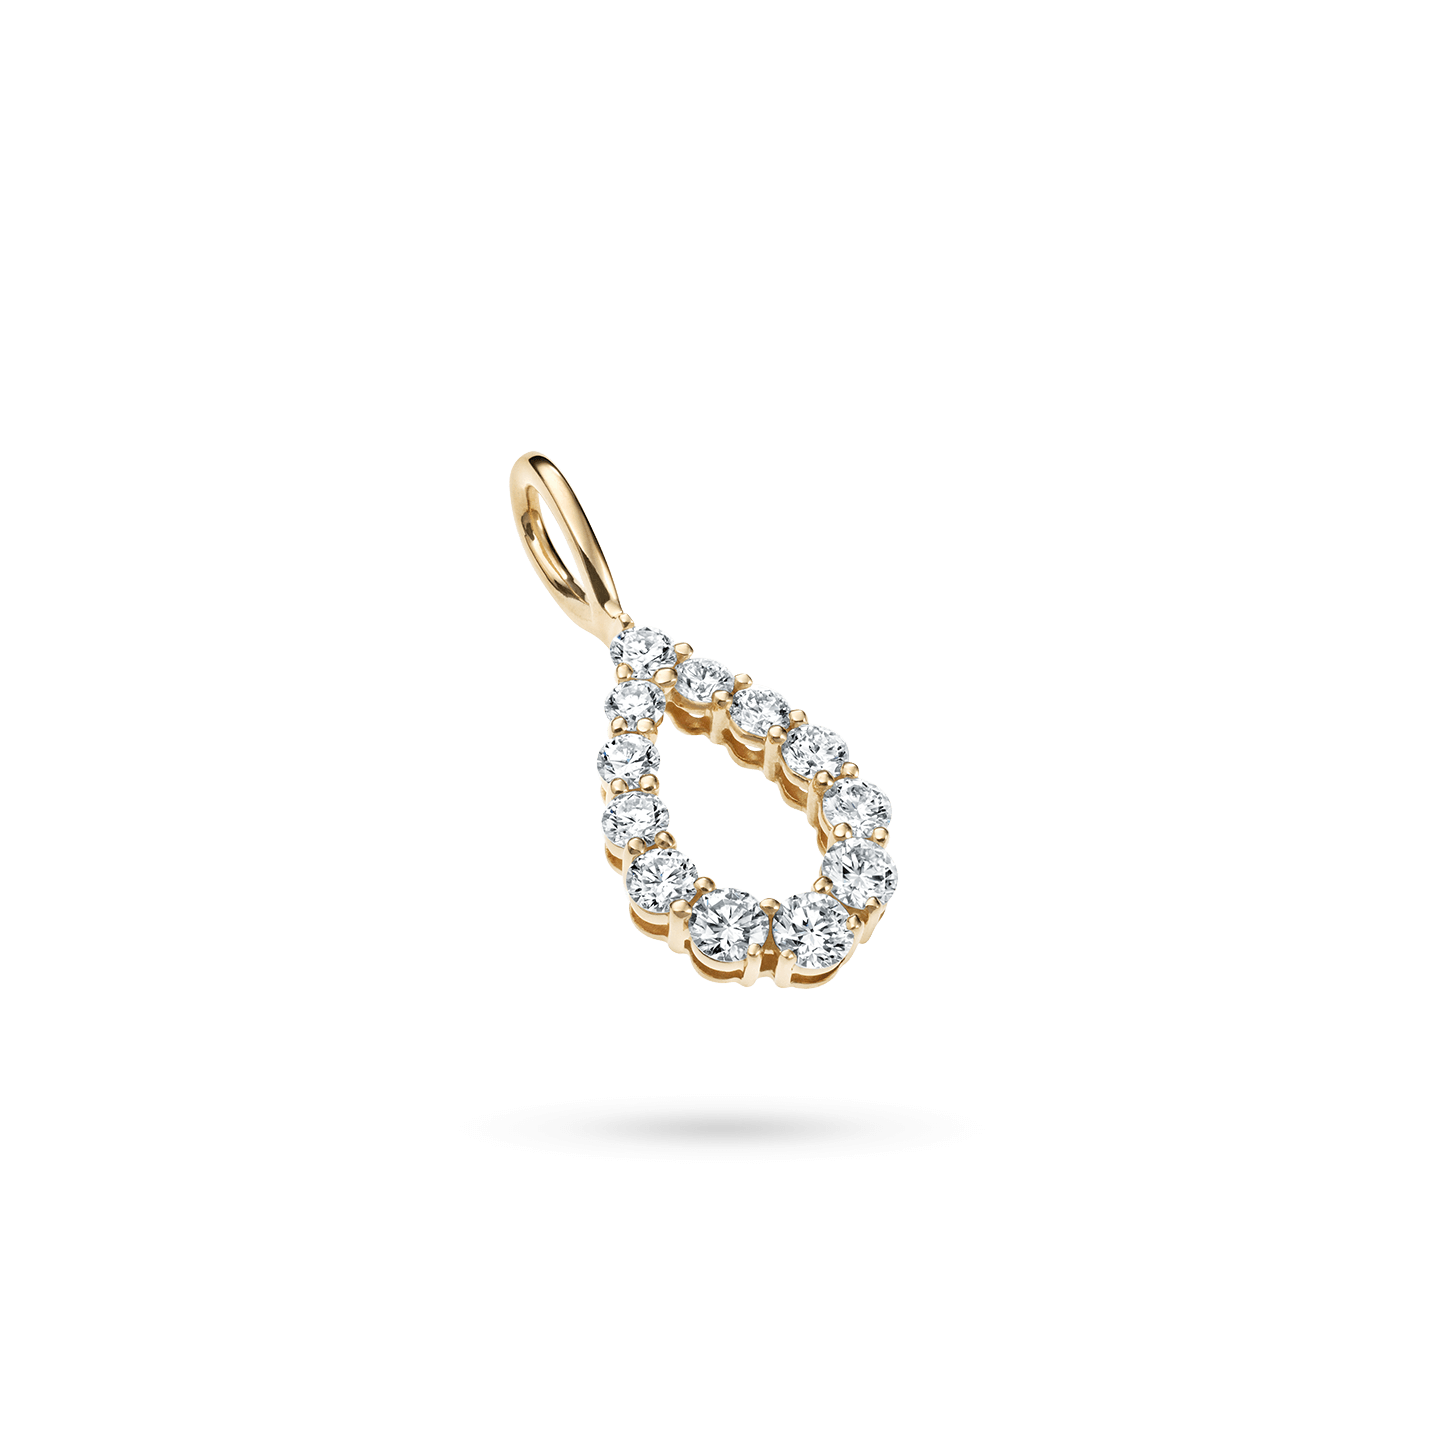 Diamond Loop Charm in Yellow Gold, Product Image 2